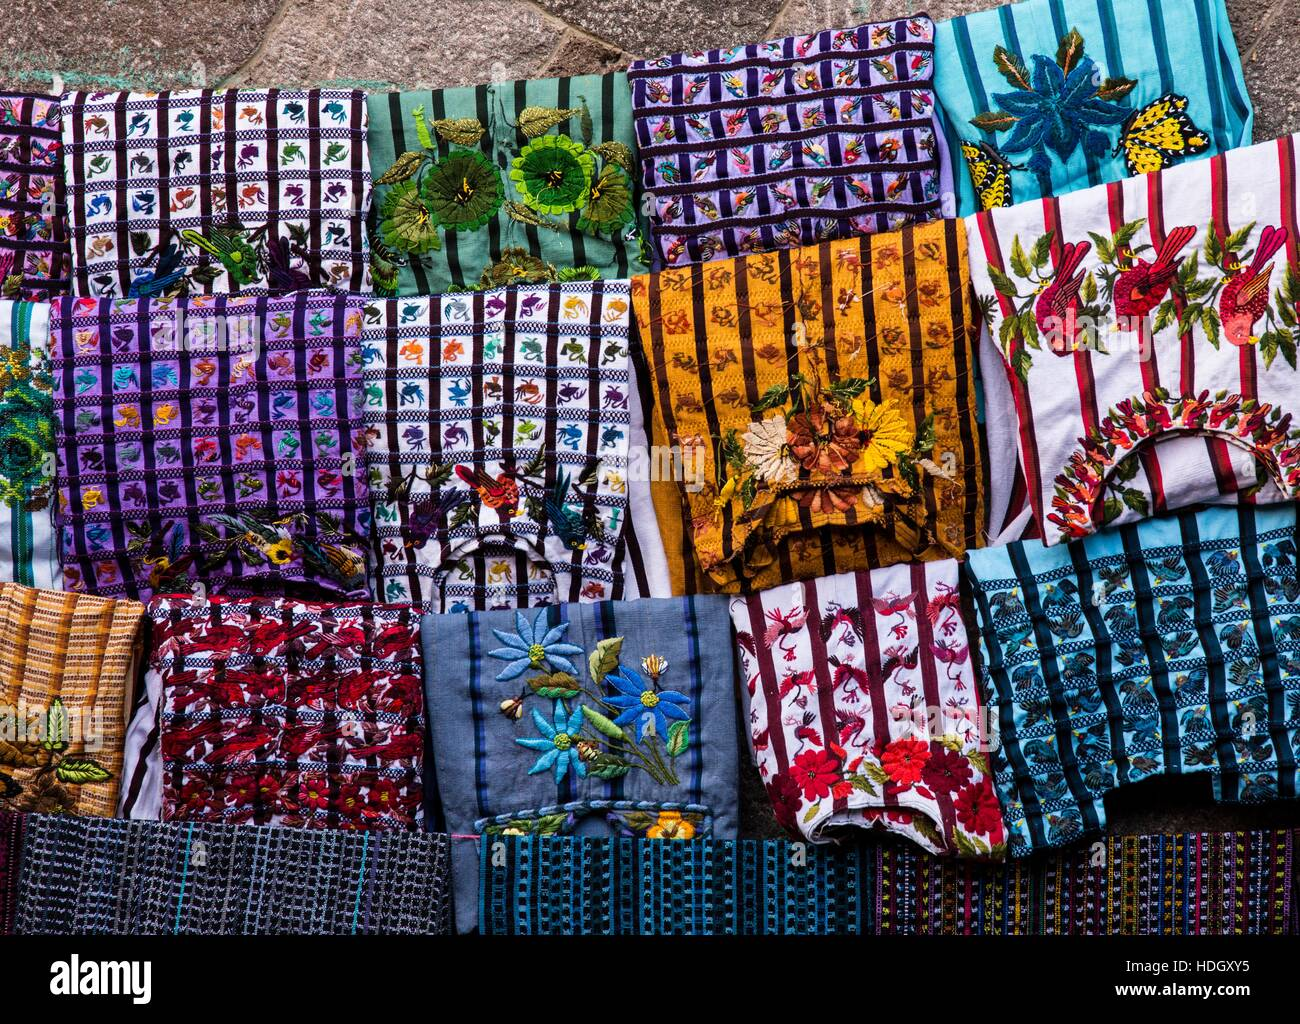 Used huipil blouses for sale in the open market in Santiago Atitlan, Guatemala.  The huipils are hand woven and - Stock Image